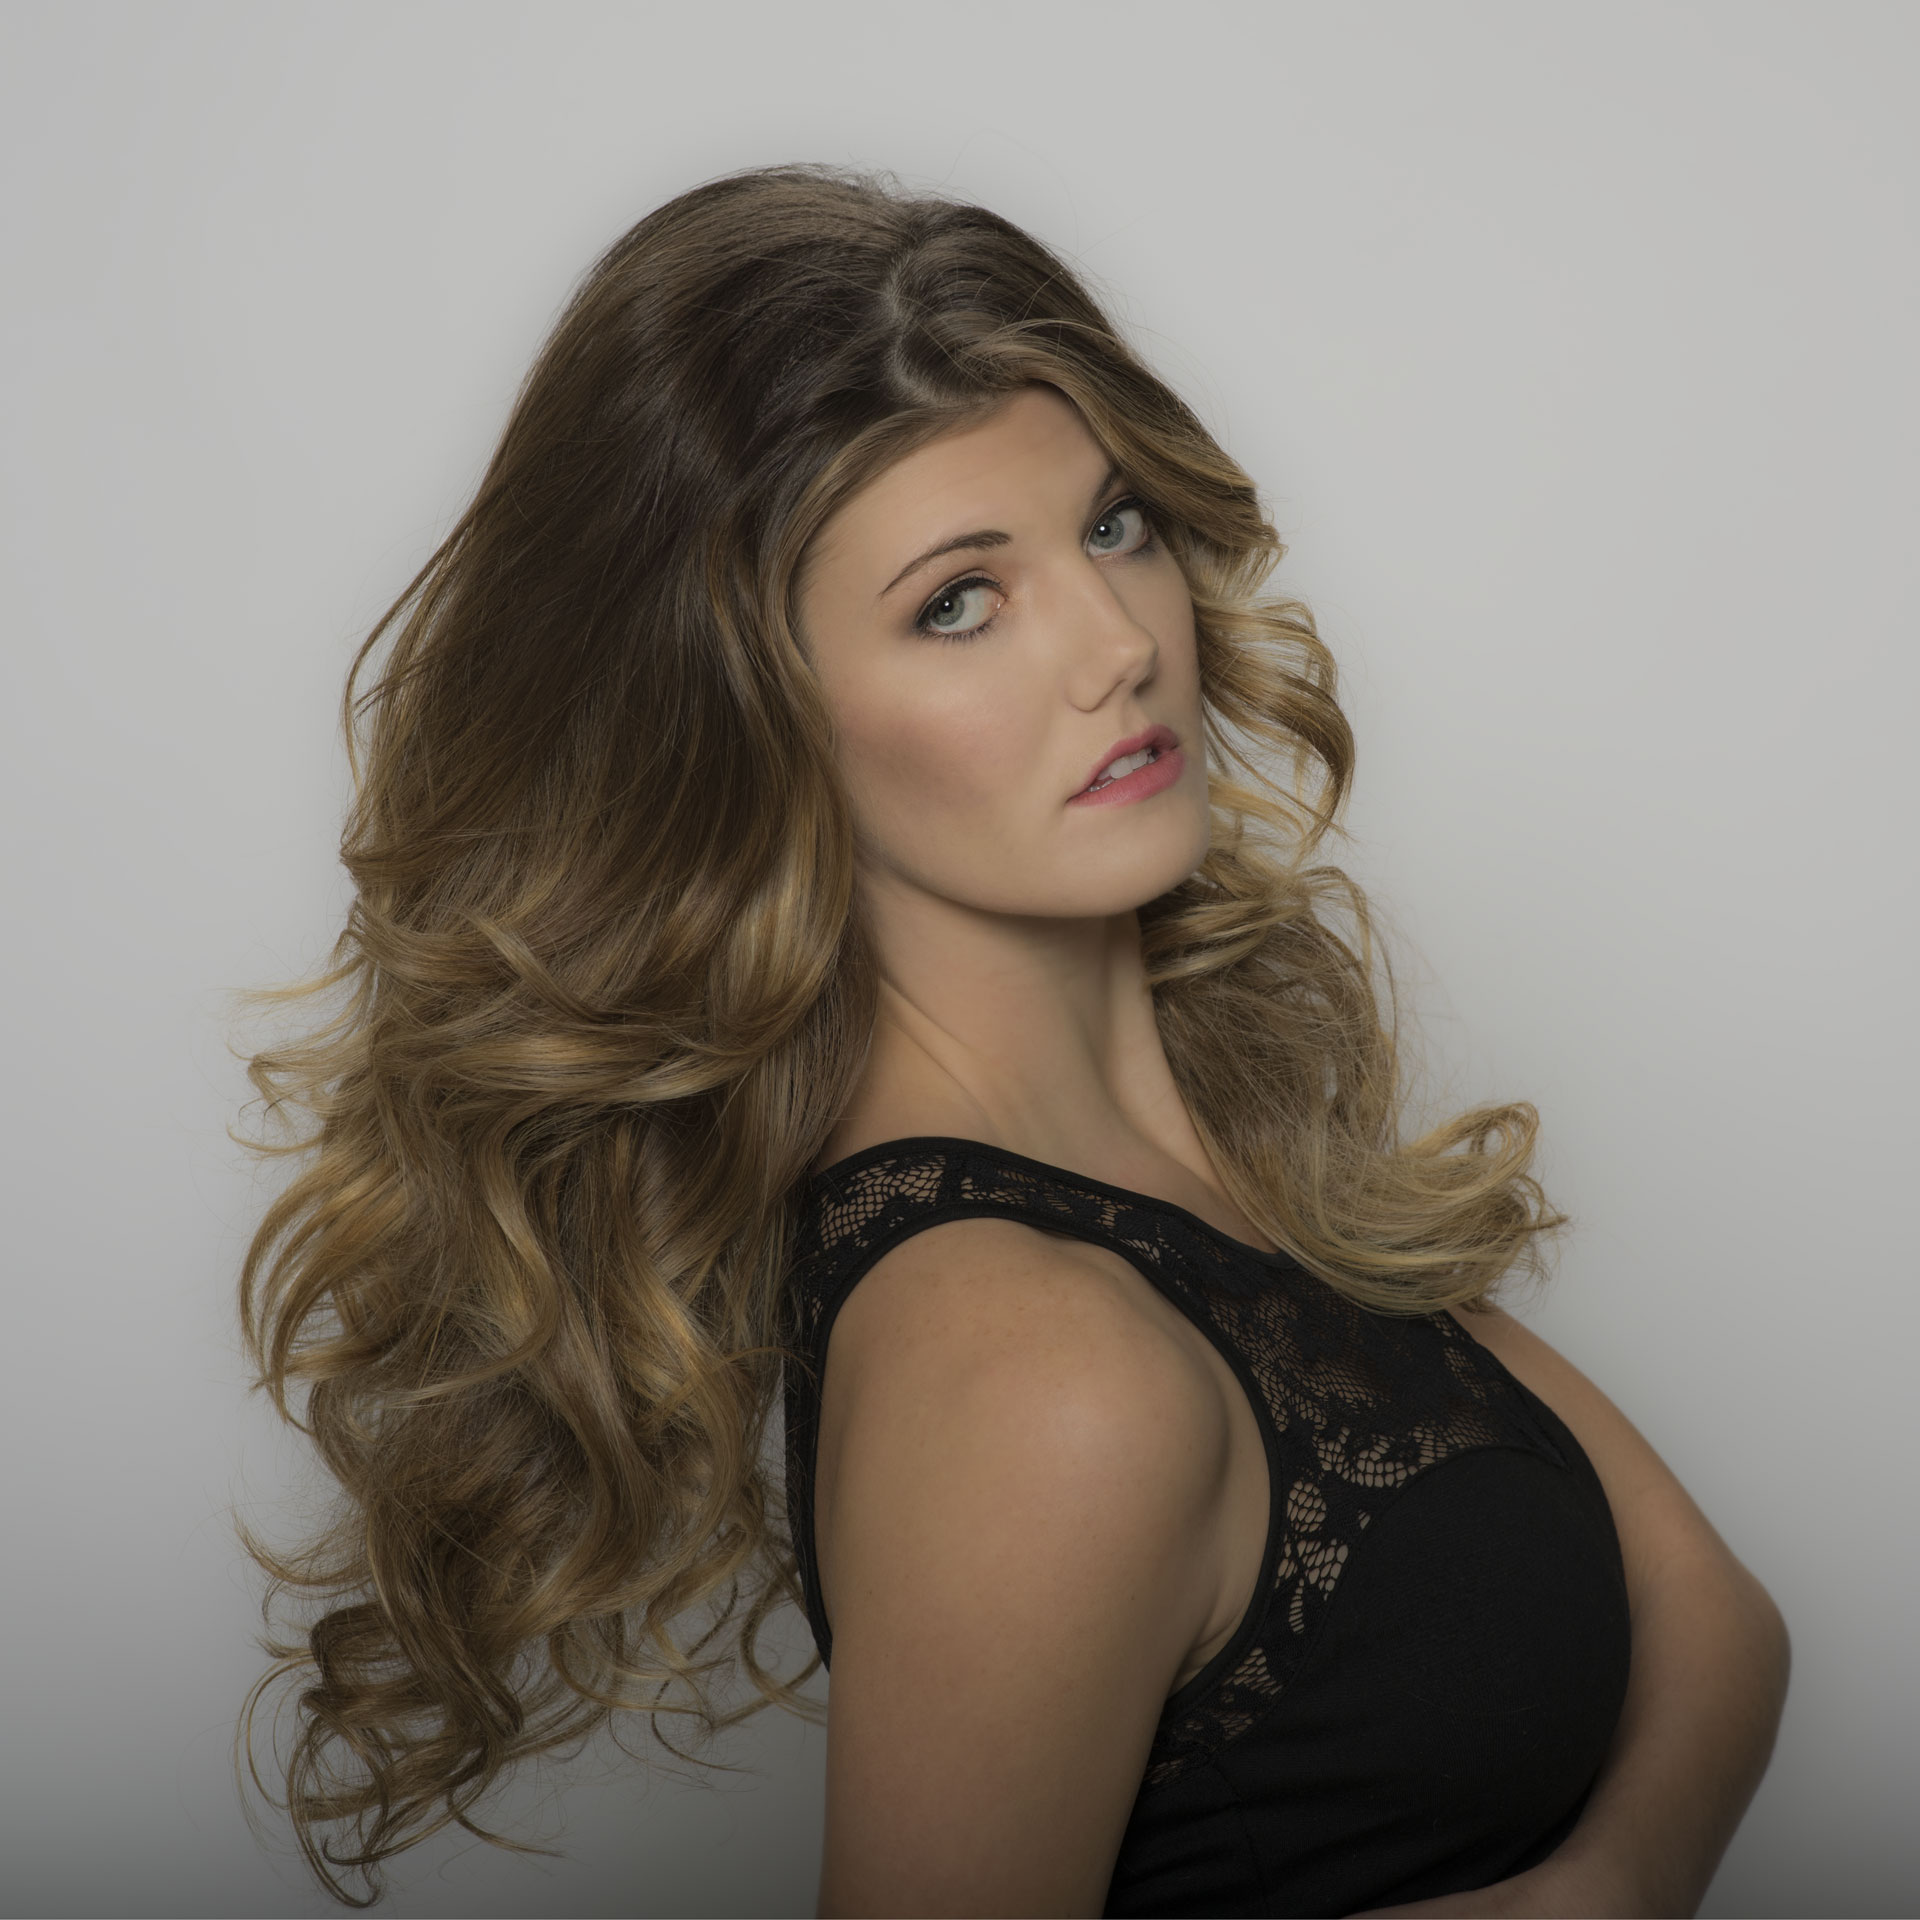 1 AALAM The Salon Plano Hair Colorist Frisco Best Hair Color specialist Dallas hair Color Expert Balayage Highlights Brunette Red Blonde Dark Hair Color Top Colorist Allen McKinney Addison TX DFW